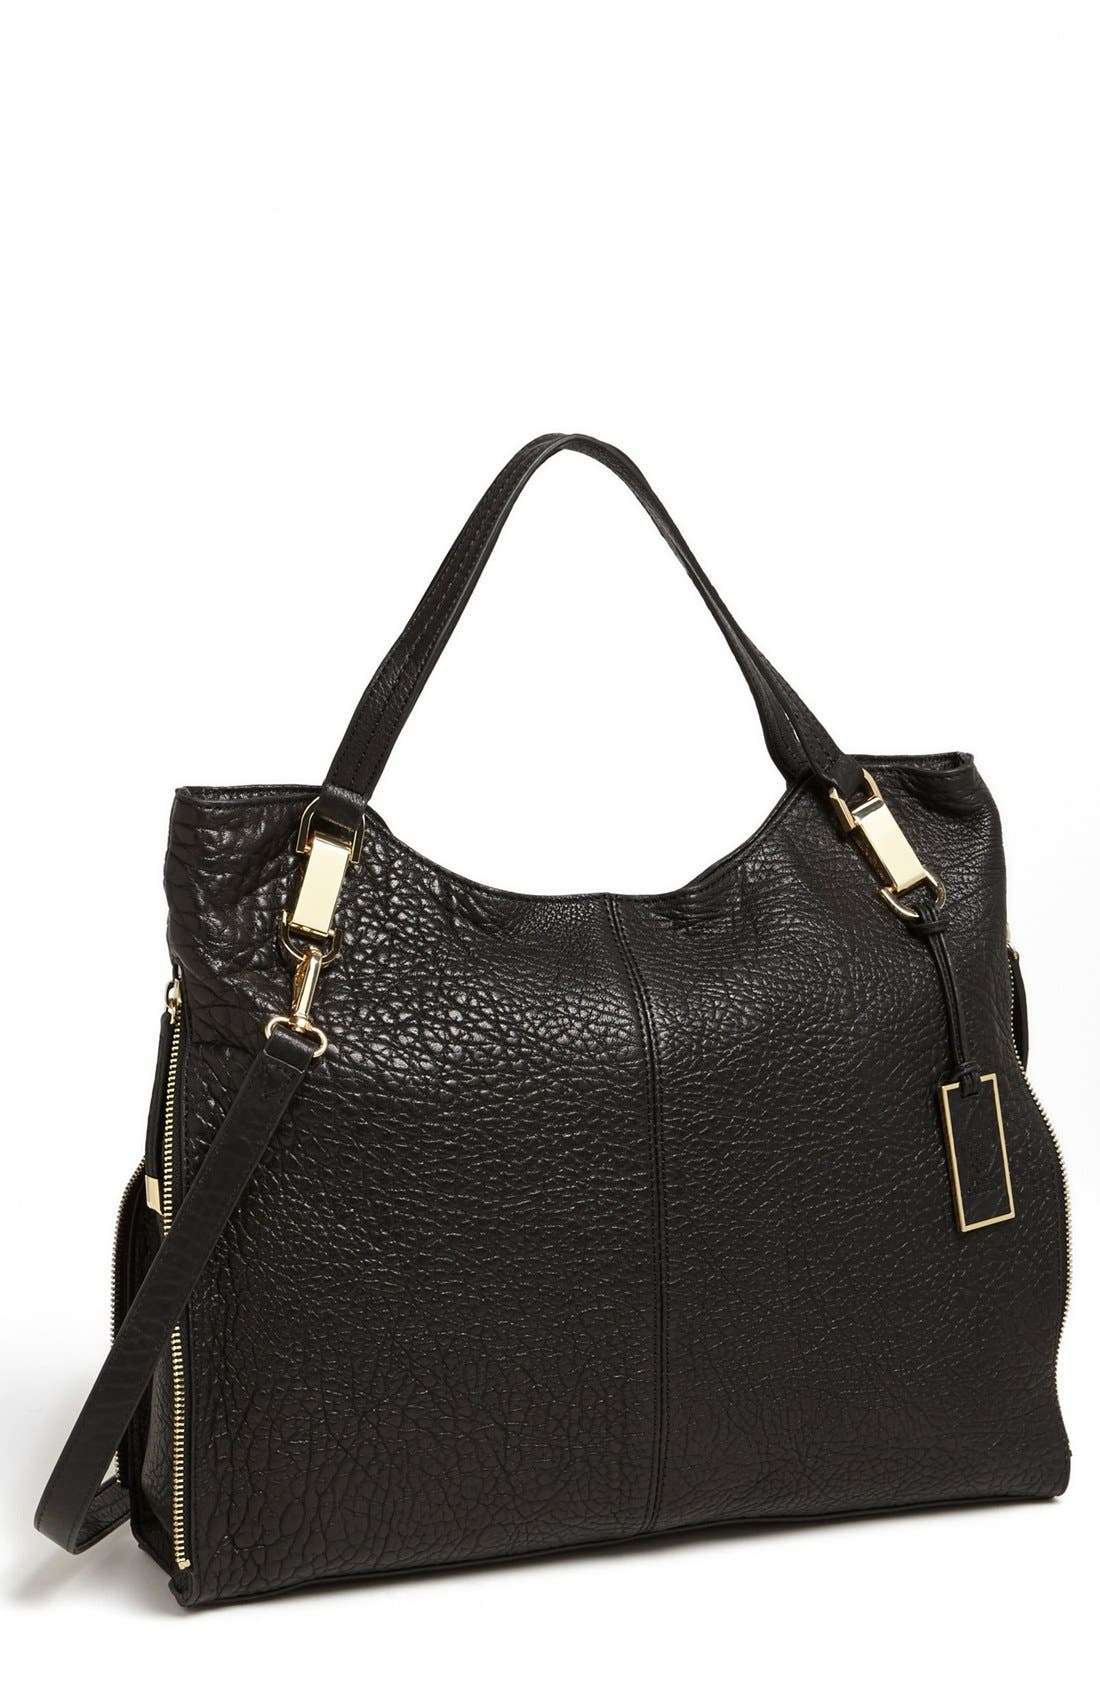 Alternate Image 1 Selected - Vince Camuto 'Riley' Leather Tote